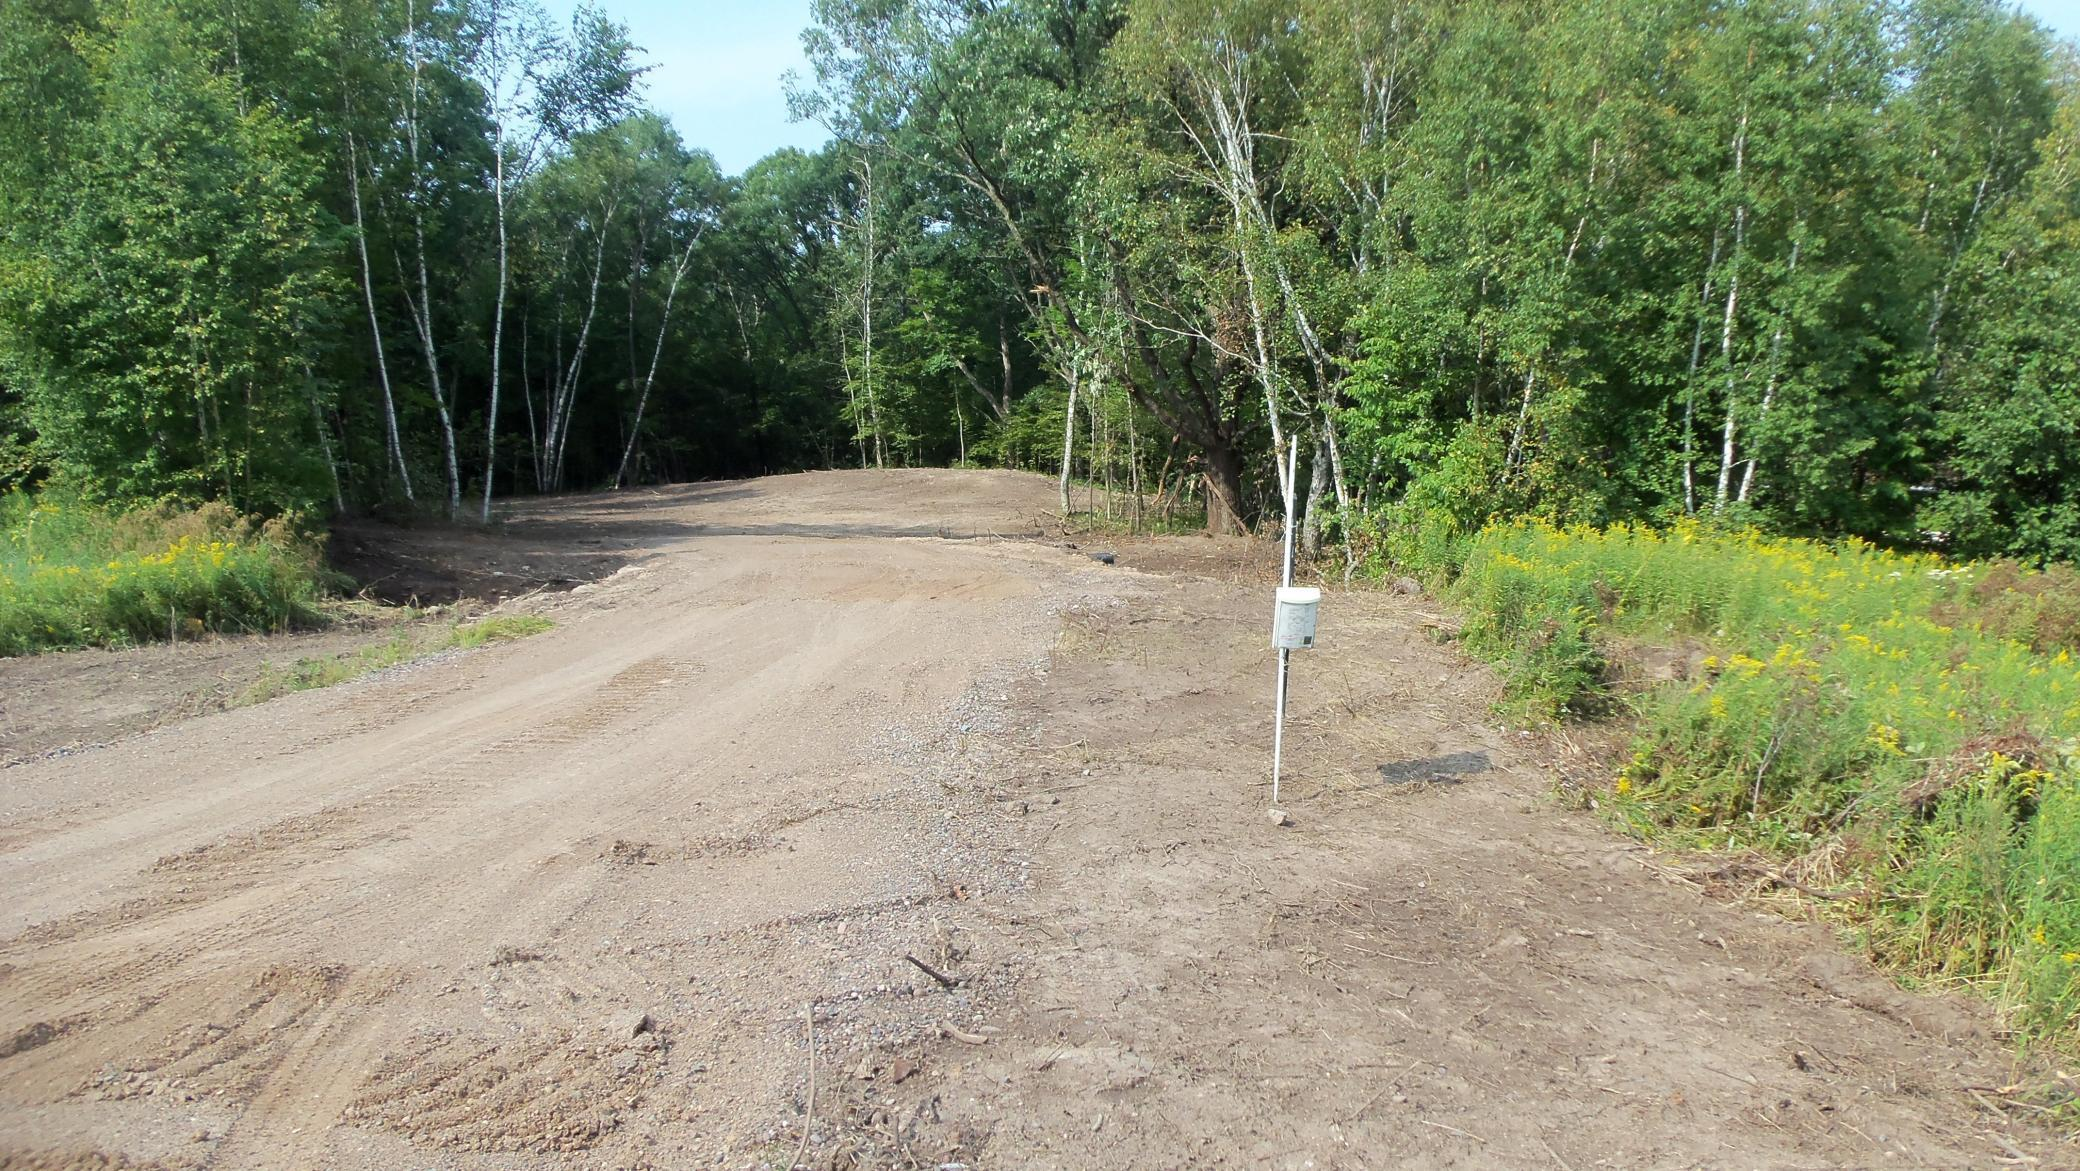 LOT 4 COUNTY H Property Photo - Balsam Lake, WI real estate listing